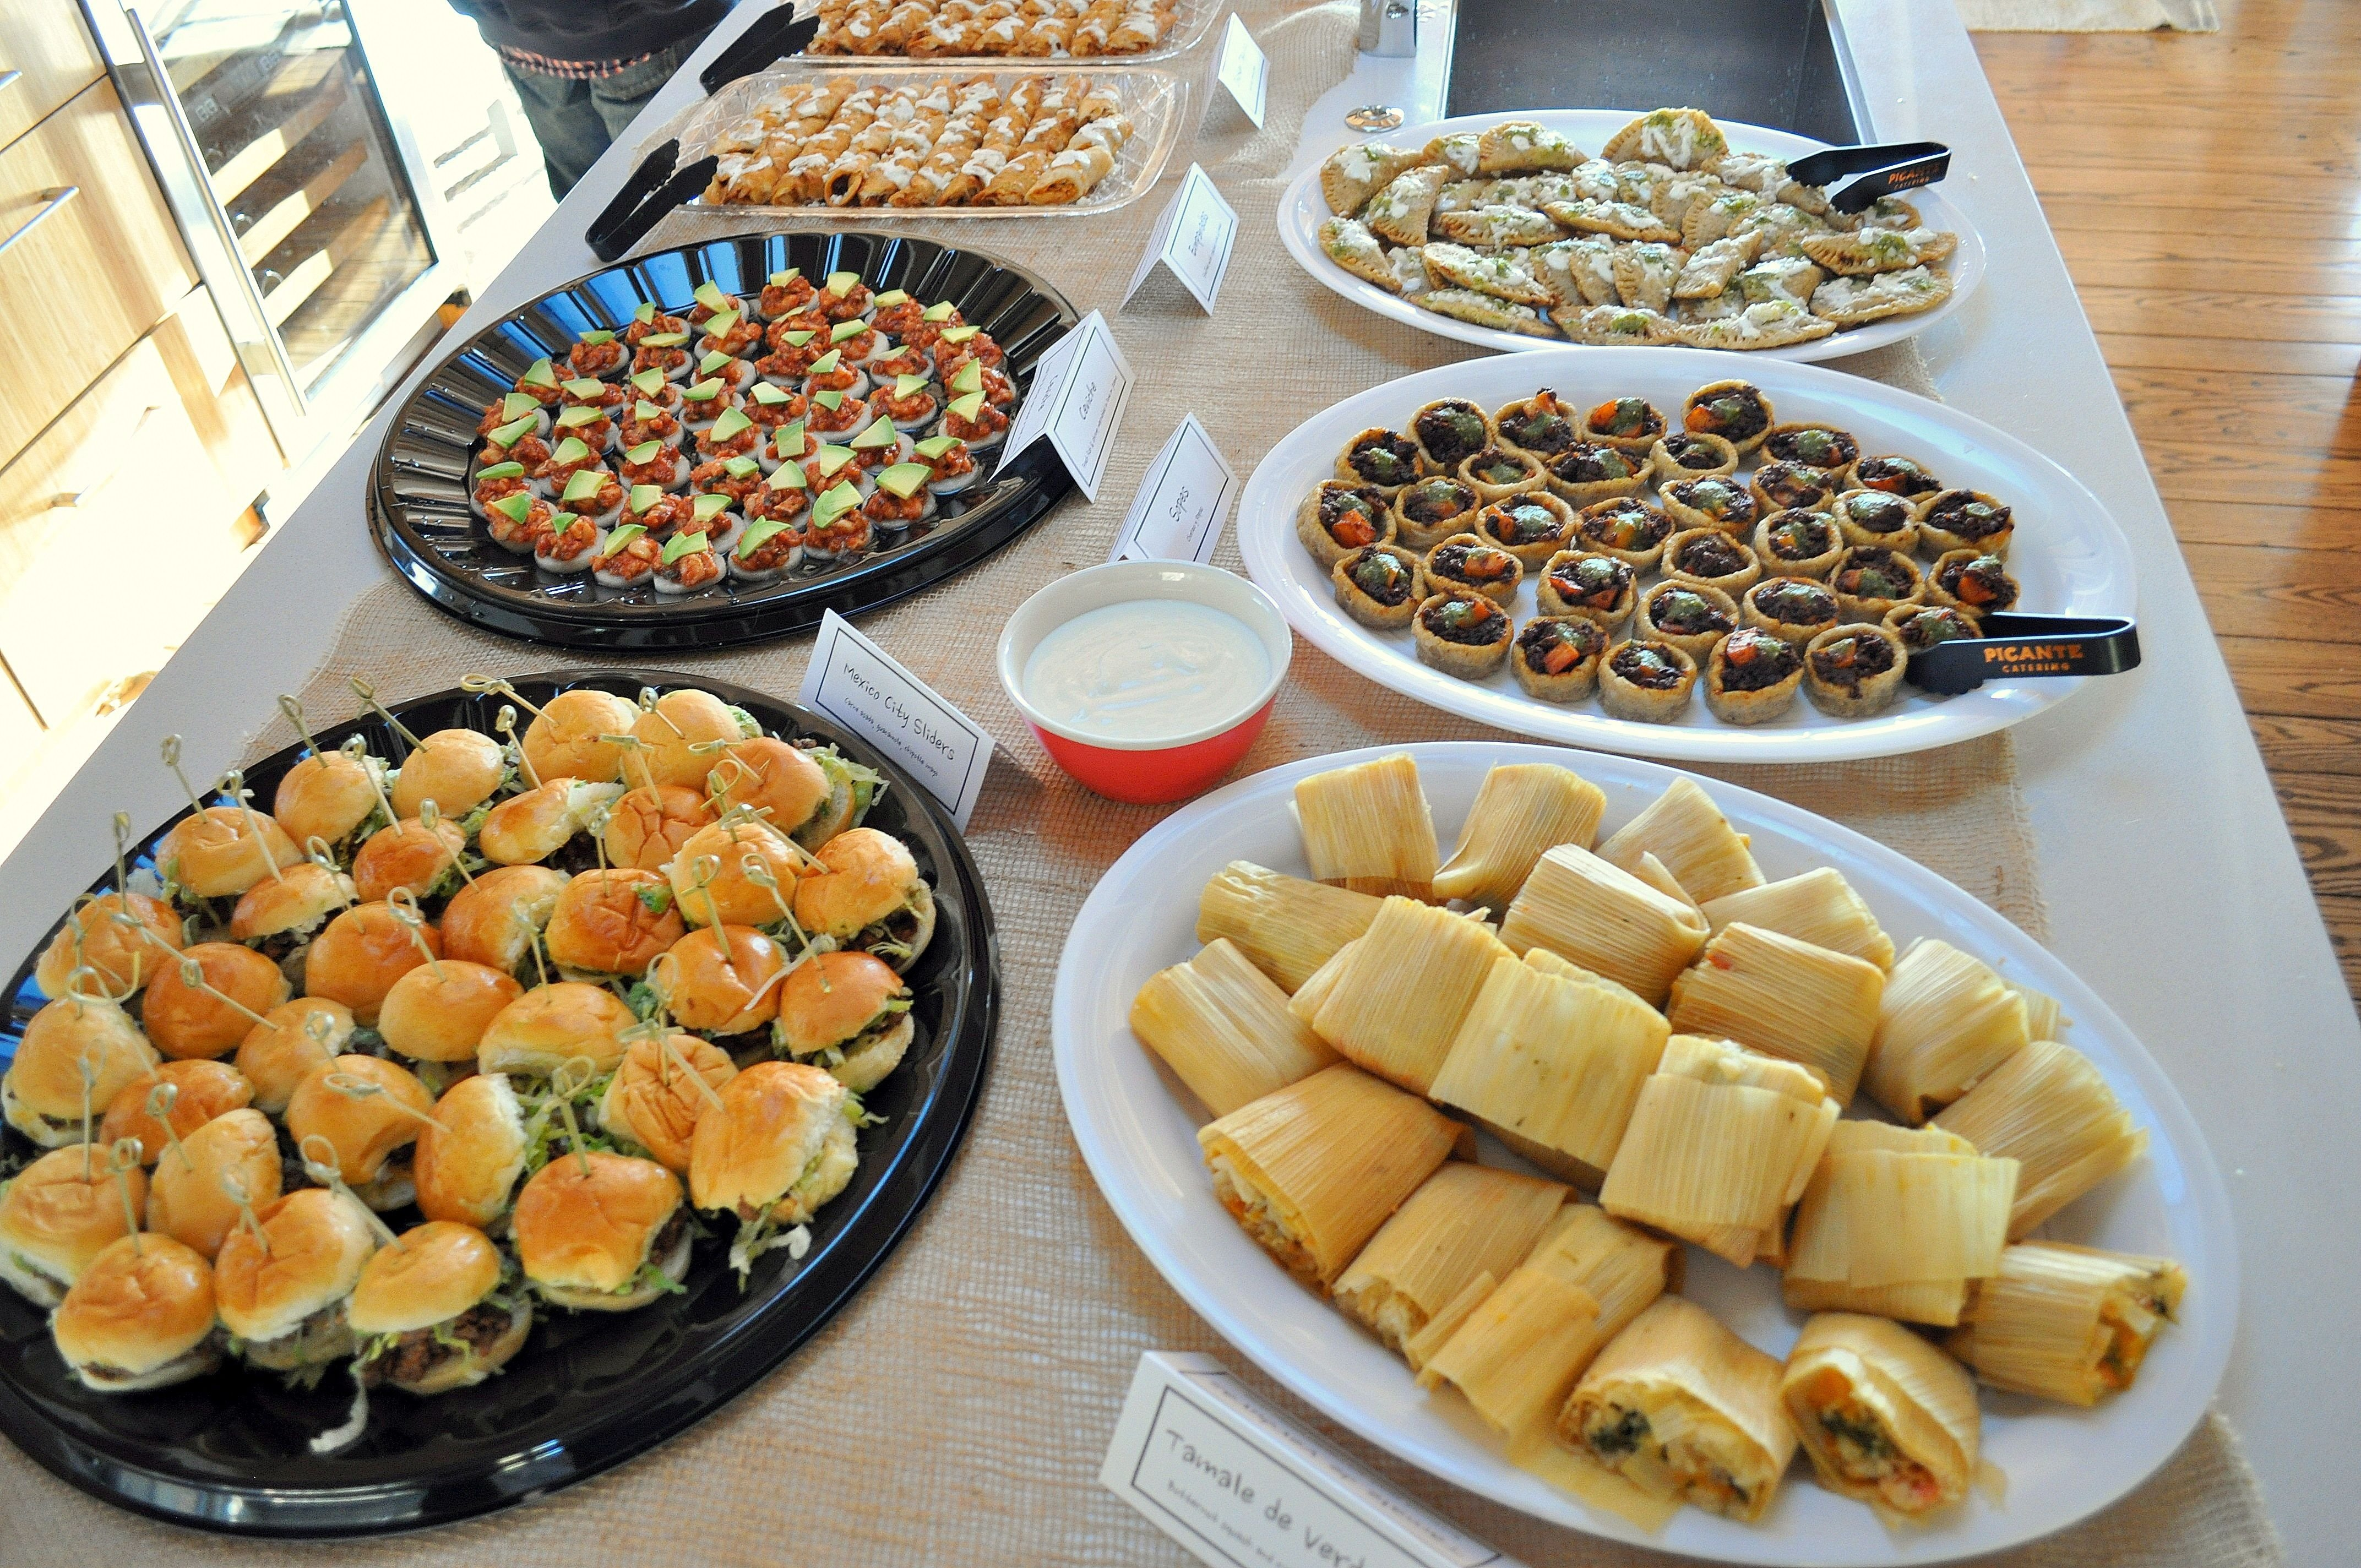 10 Stylish Food Ideas For A Baby Shower baby shower finger food recipes dsc 0255 baby shower food 4 2020